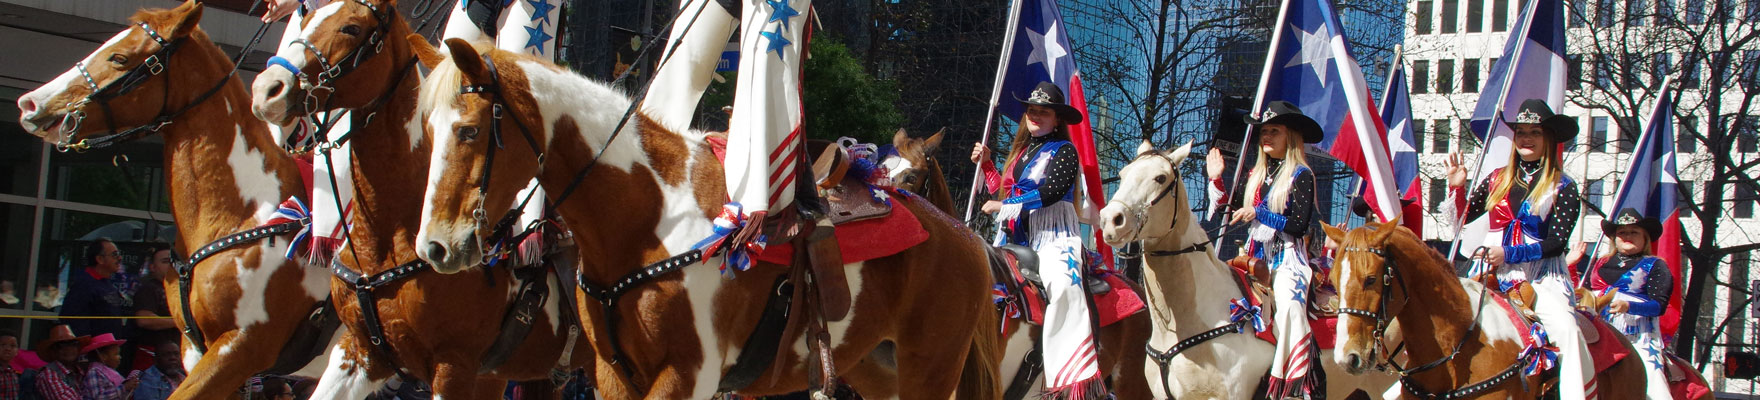 Downtown Rodeo Parade